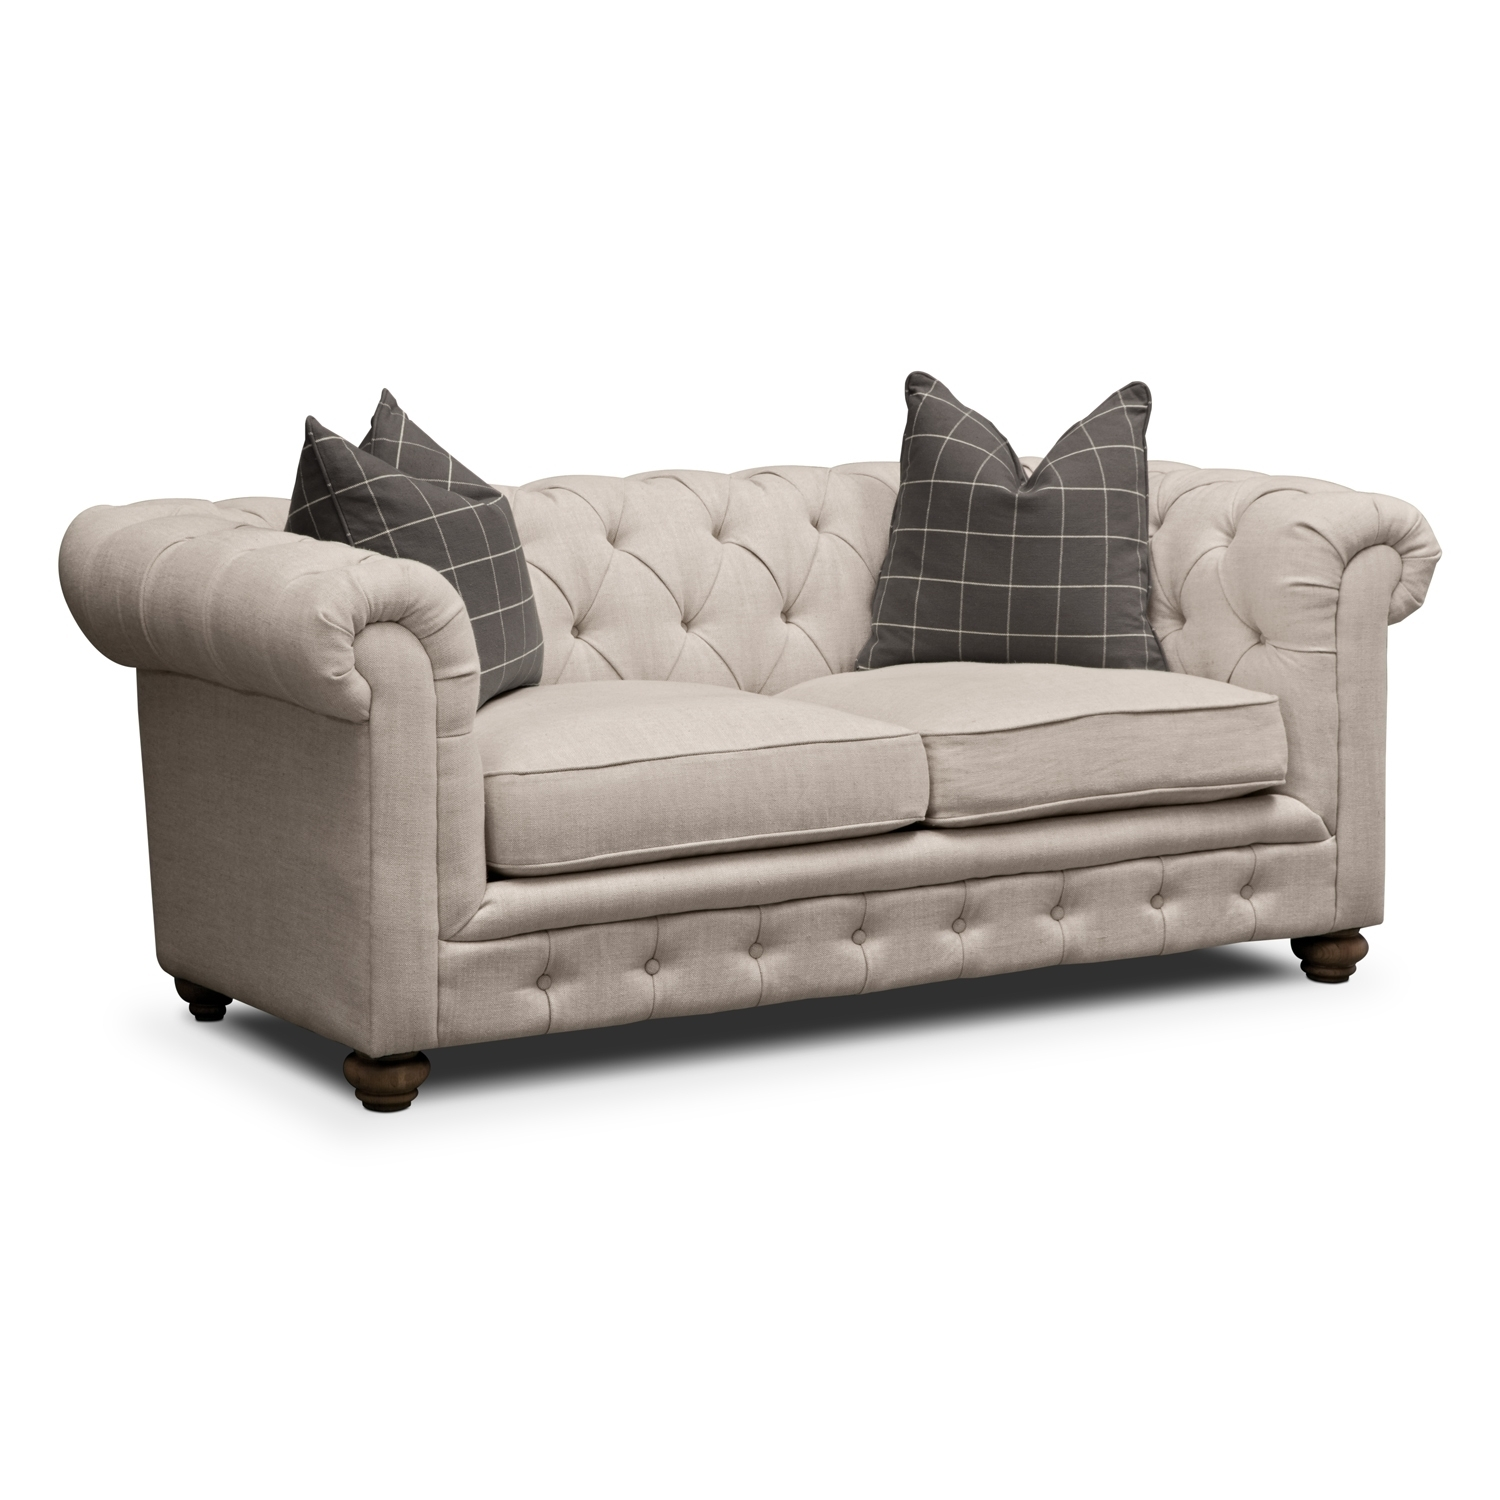 Great Apartment Size Sofas 20 On Modern Sofa Ideas With Apartment Intended For Apartment Size Sofas (Image 8 of 10)